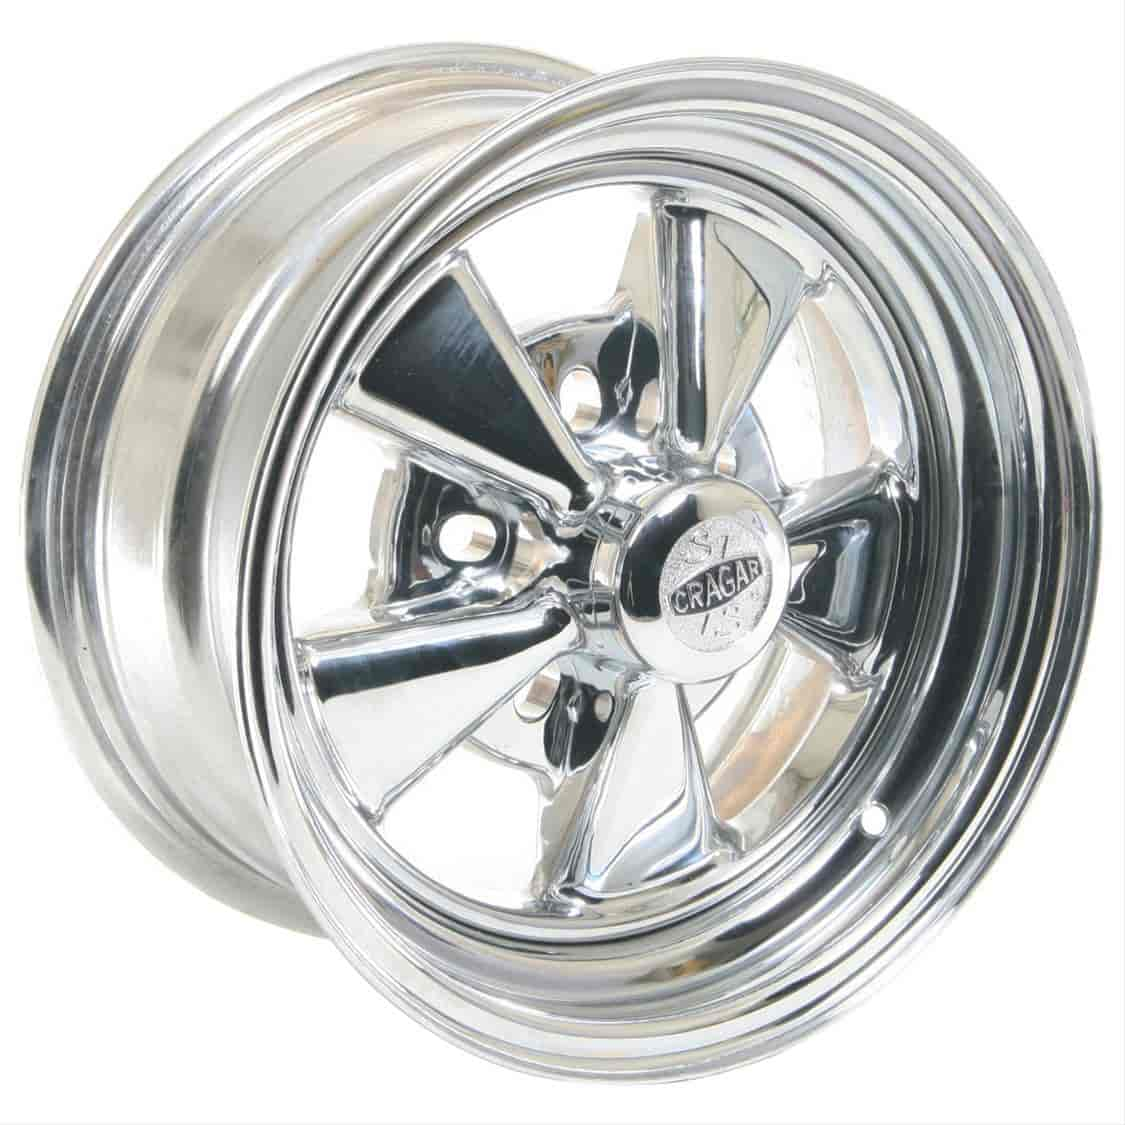 Cragar 08060 - Cragar 08/61 Series S/S Super Sport Wheels